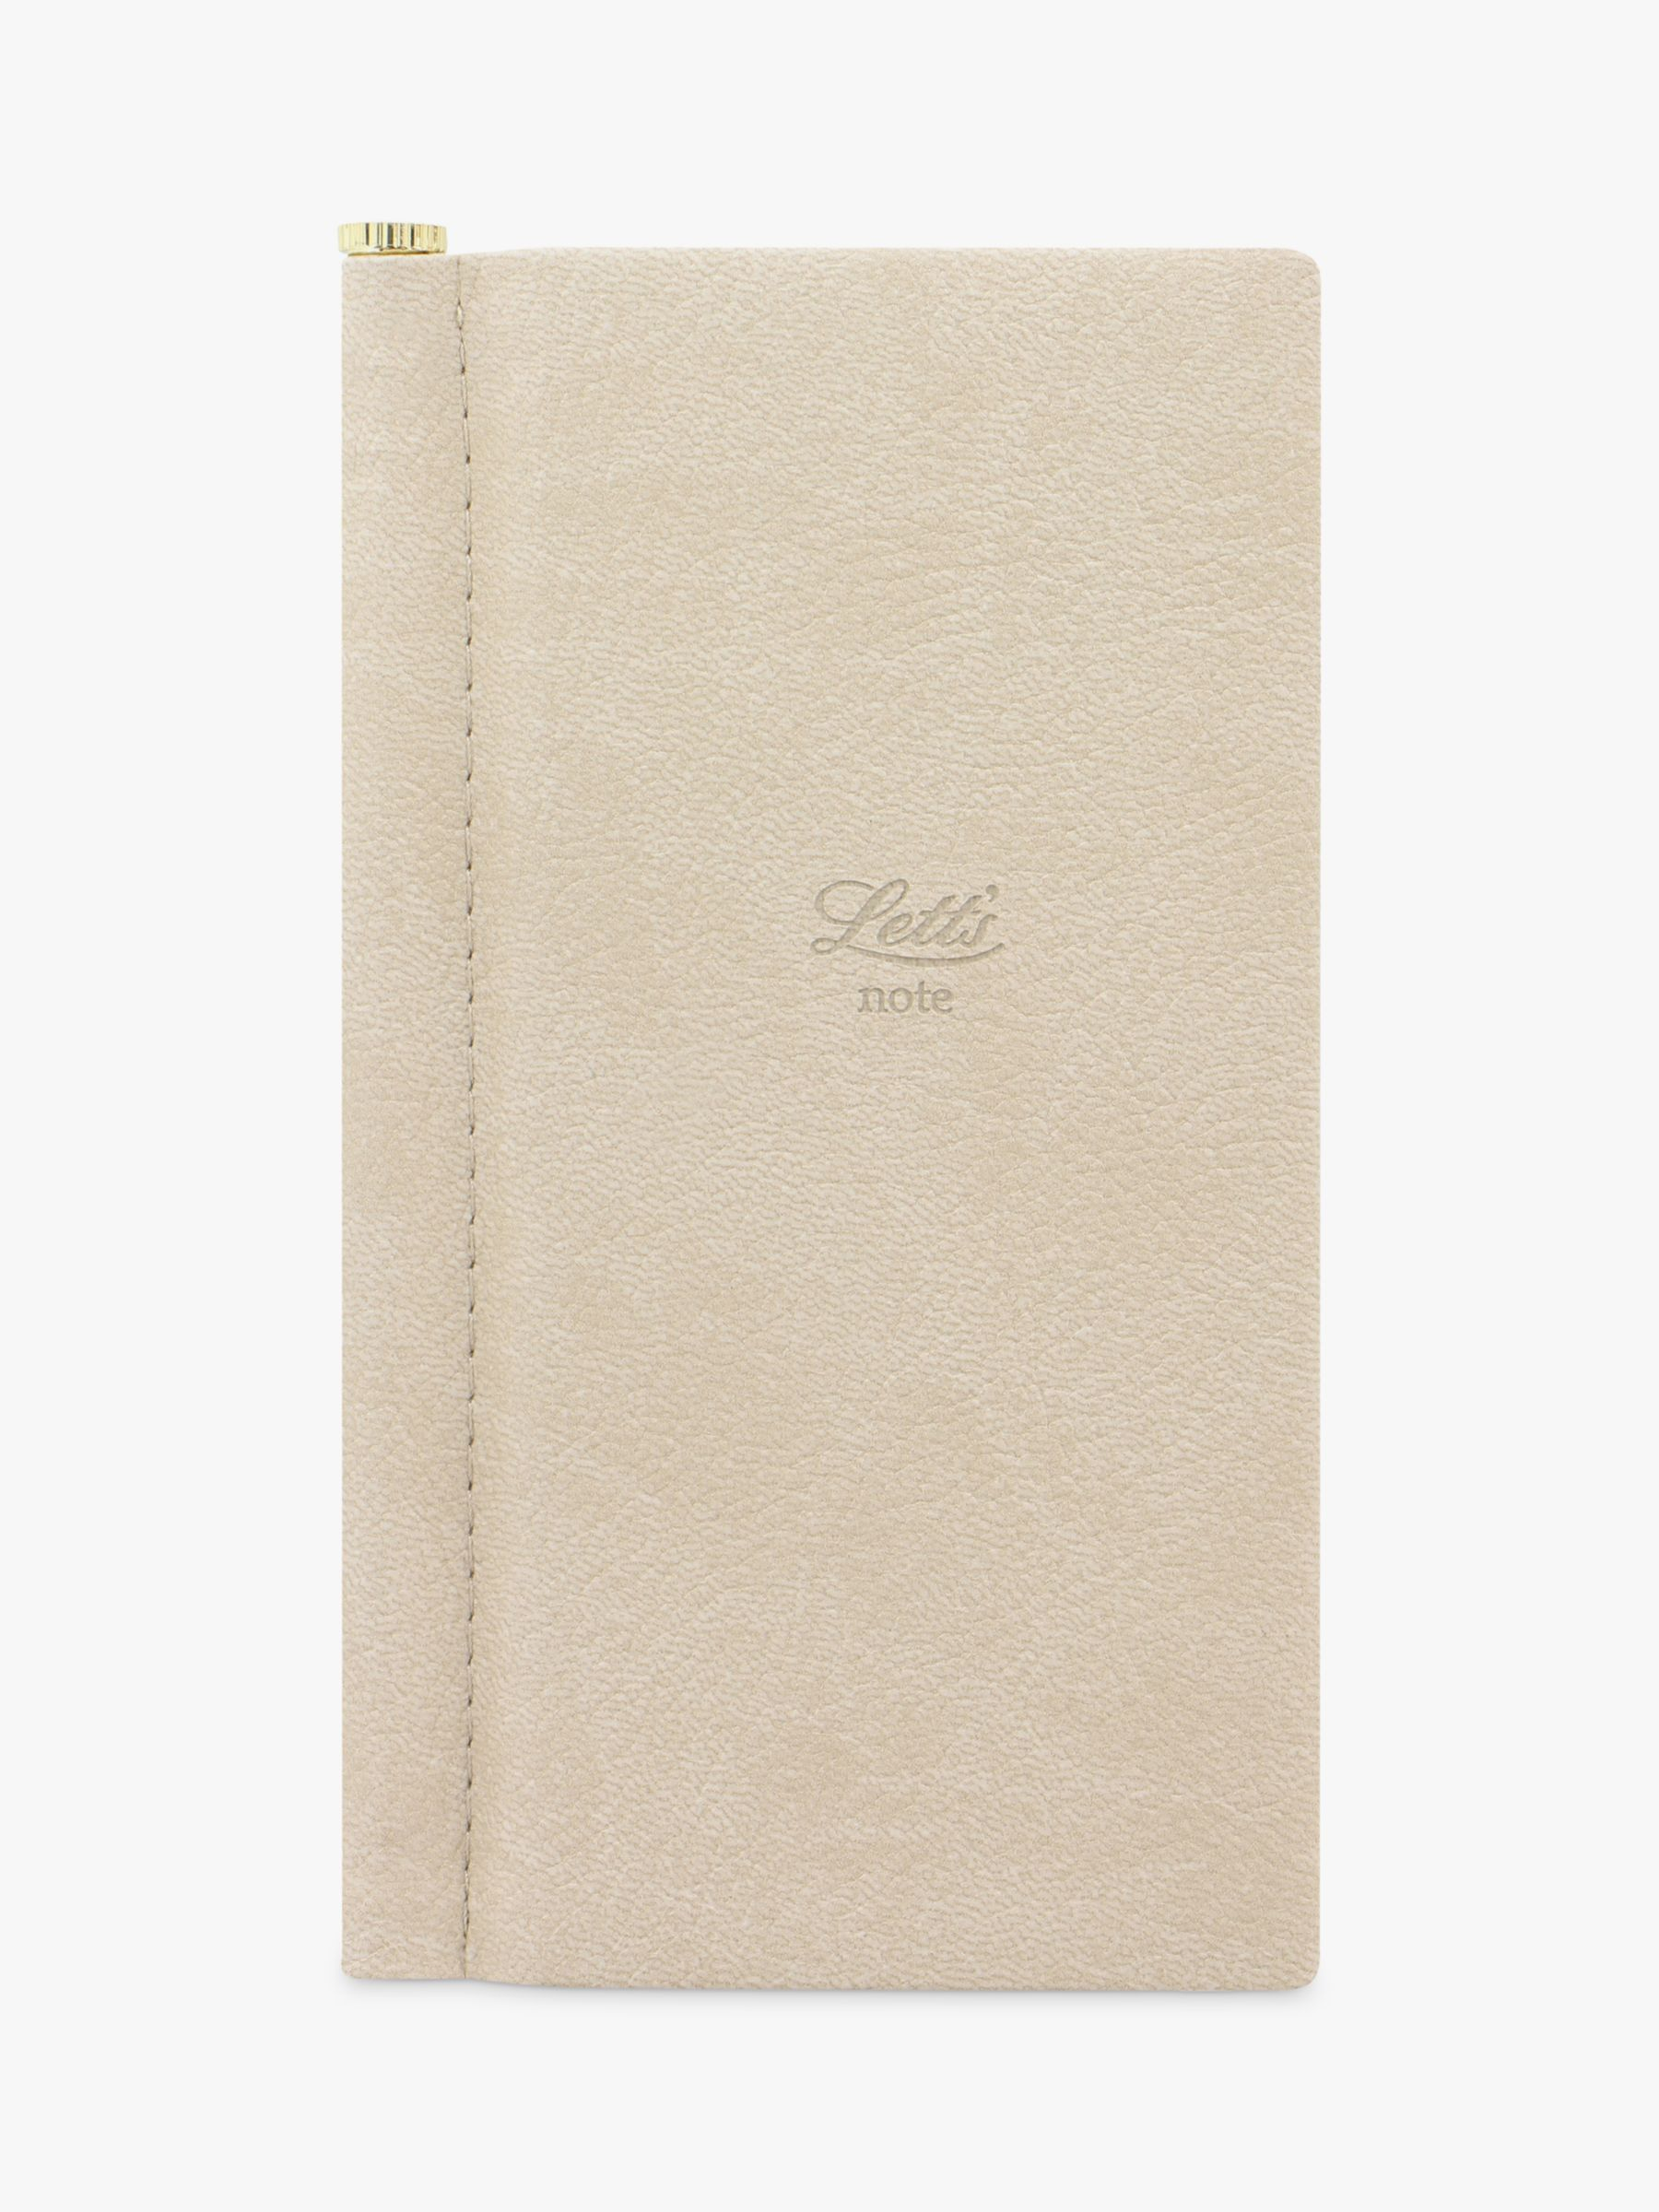 Letts Letts Slim Notebook with Pen